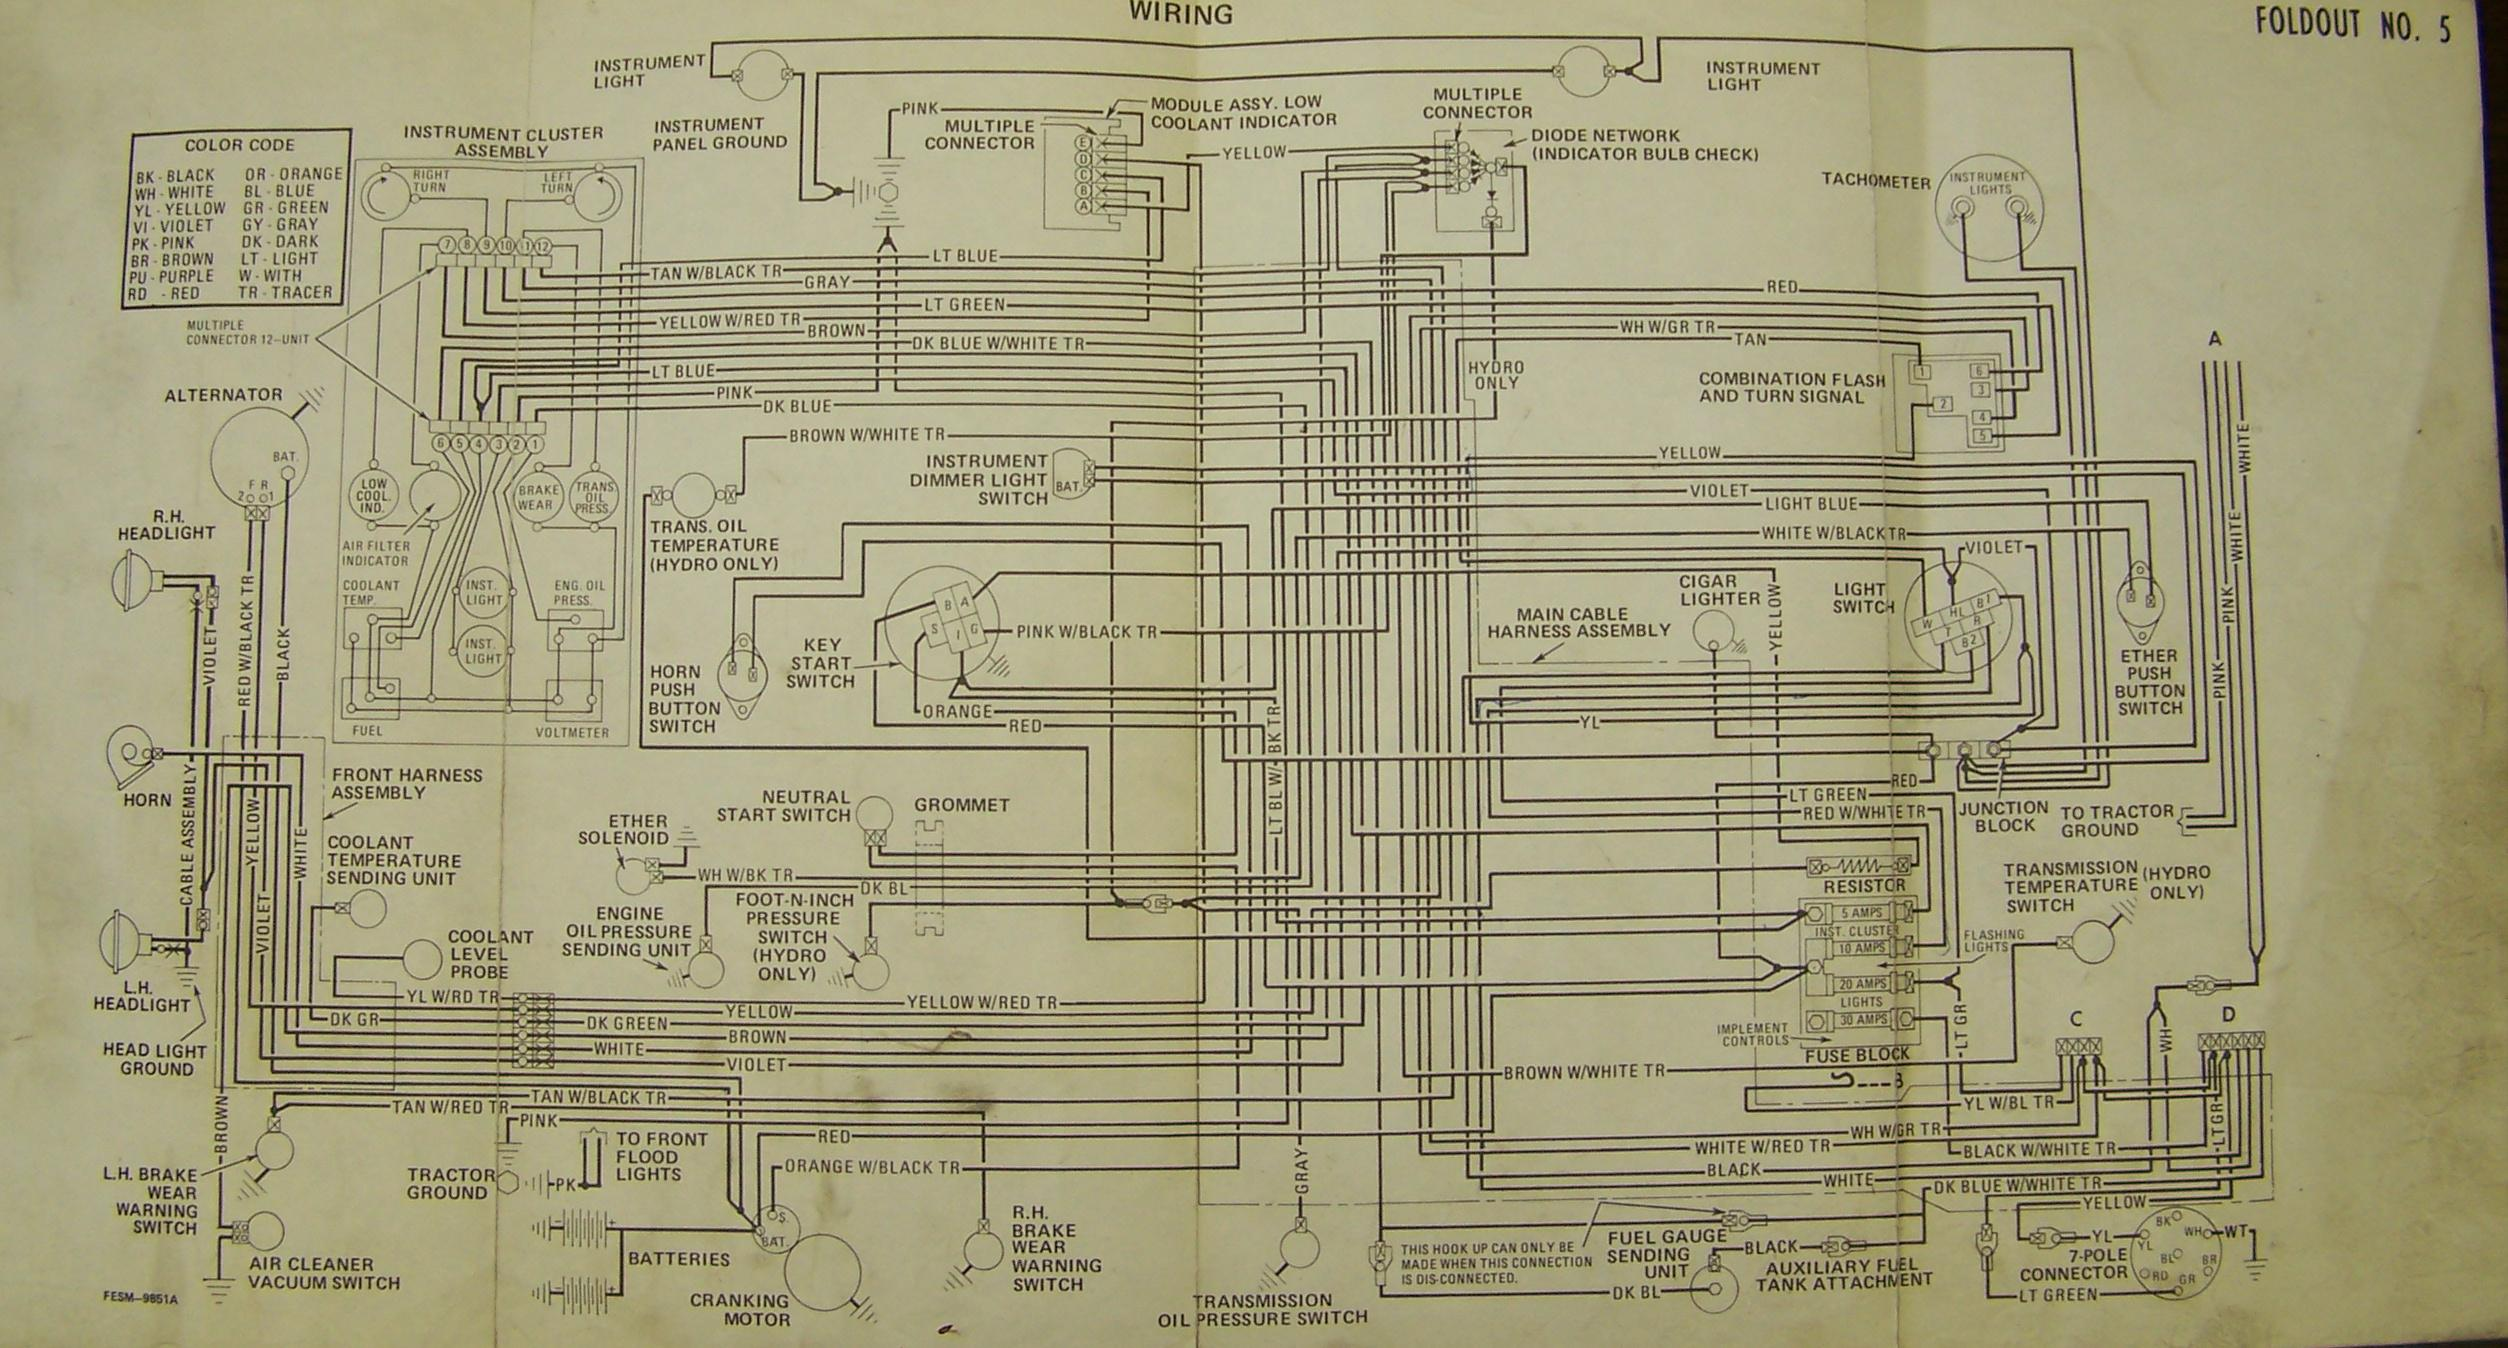 LE_9197] Tractor Manual Further Case Tractor Wiring Diagram On Ih 585 Wiring  Download DiagramLectu Eopsy Inama Mohammedshrine Librar Wiring 101